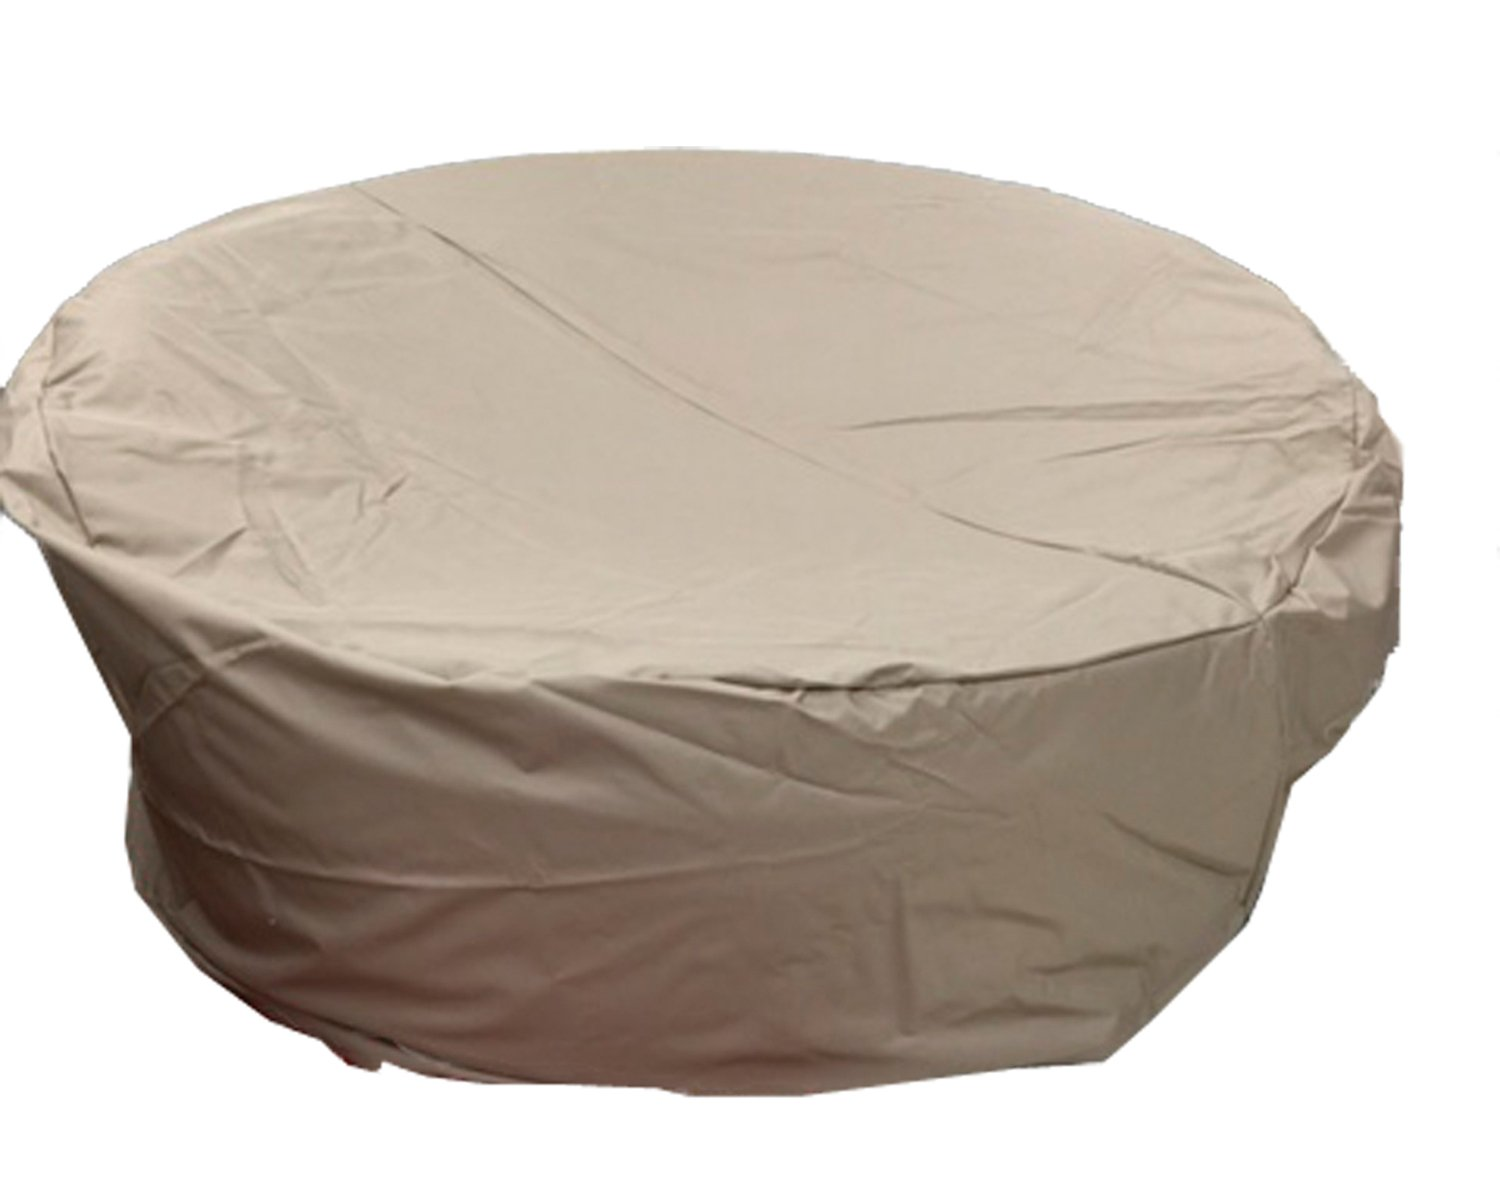 Garden Furniture Covers Round Amazon all weather 65x 315h in diameter outdoor round amazon all weather 65x 315h in diameter outdoor round daybed patio furniture cover in beige heavy duty garden furniture cover garden outdoor workwithnaturefo